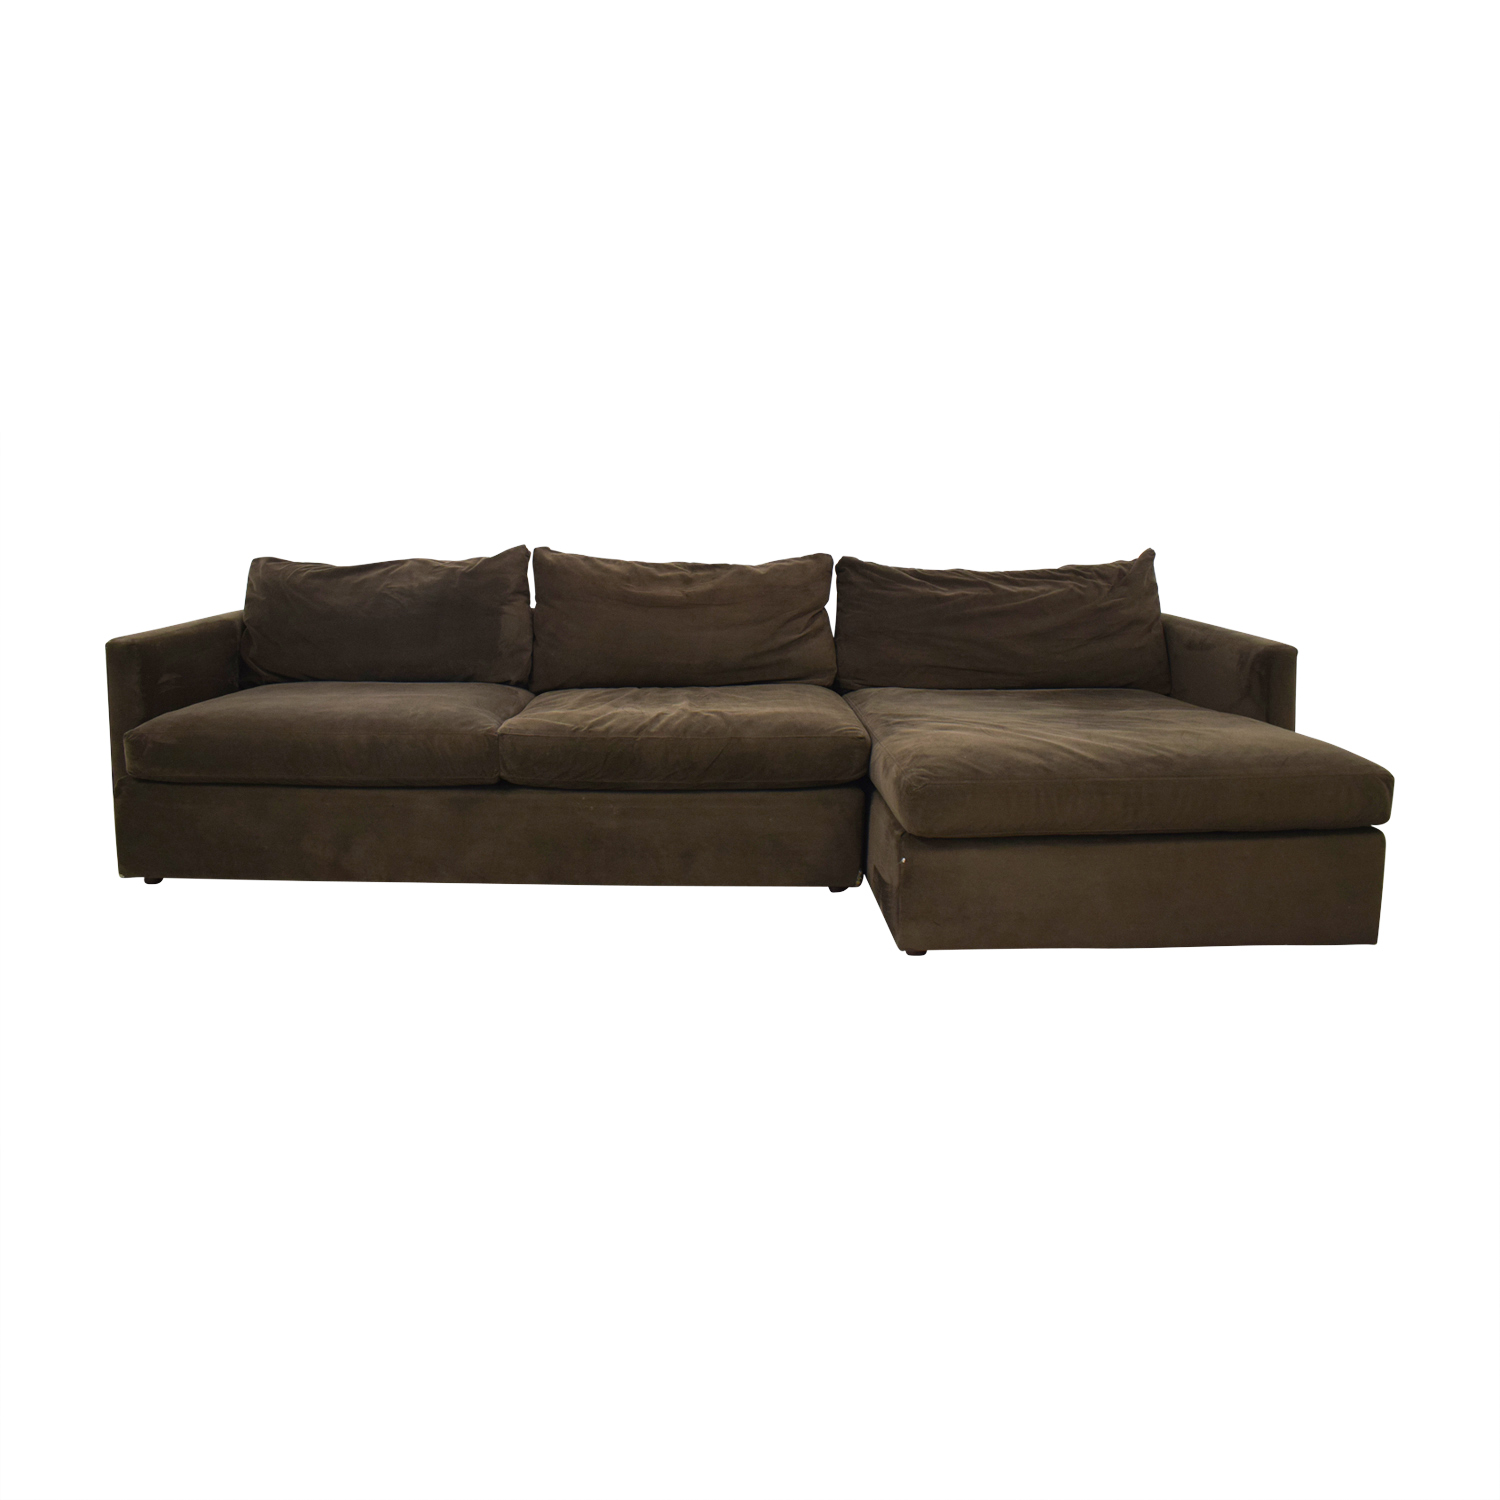 Crate & Barrel Brown Sectional / Sofas